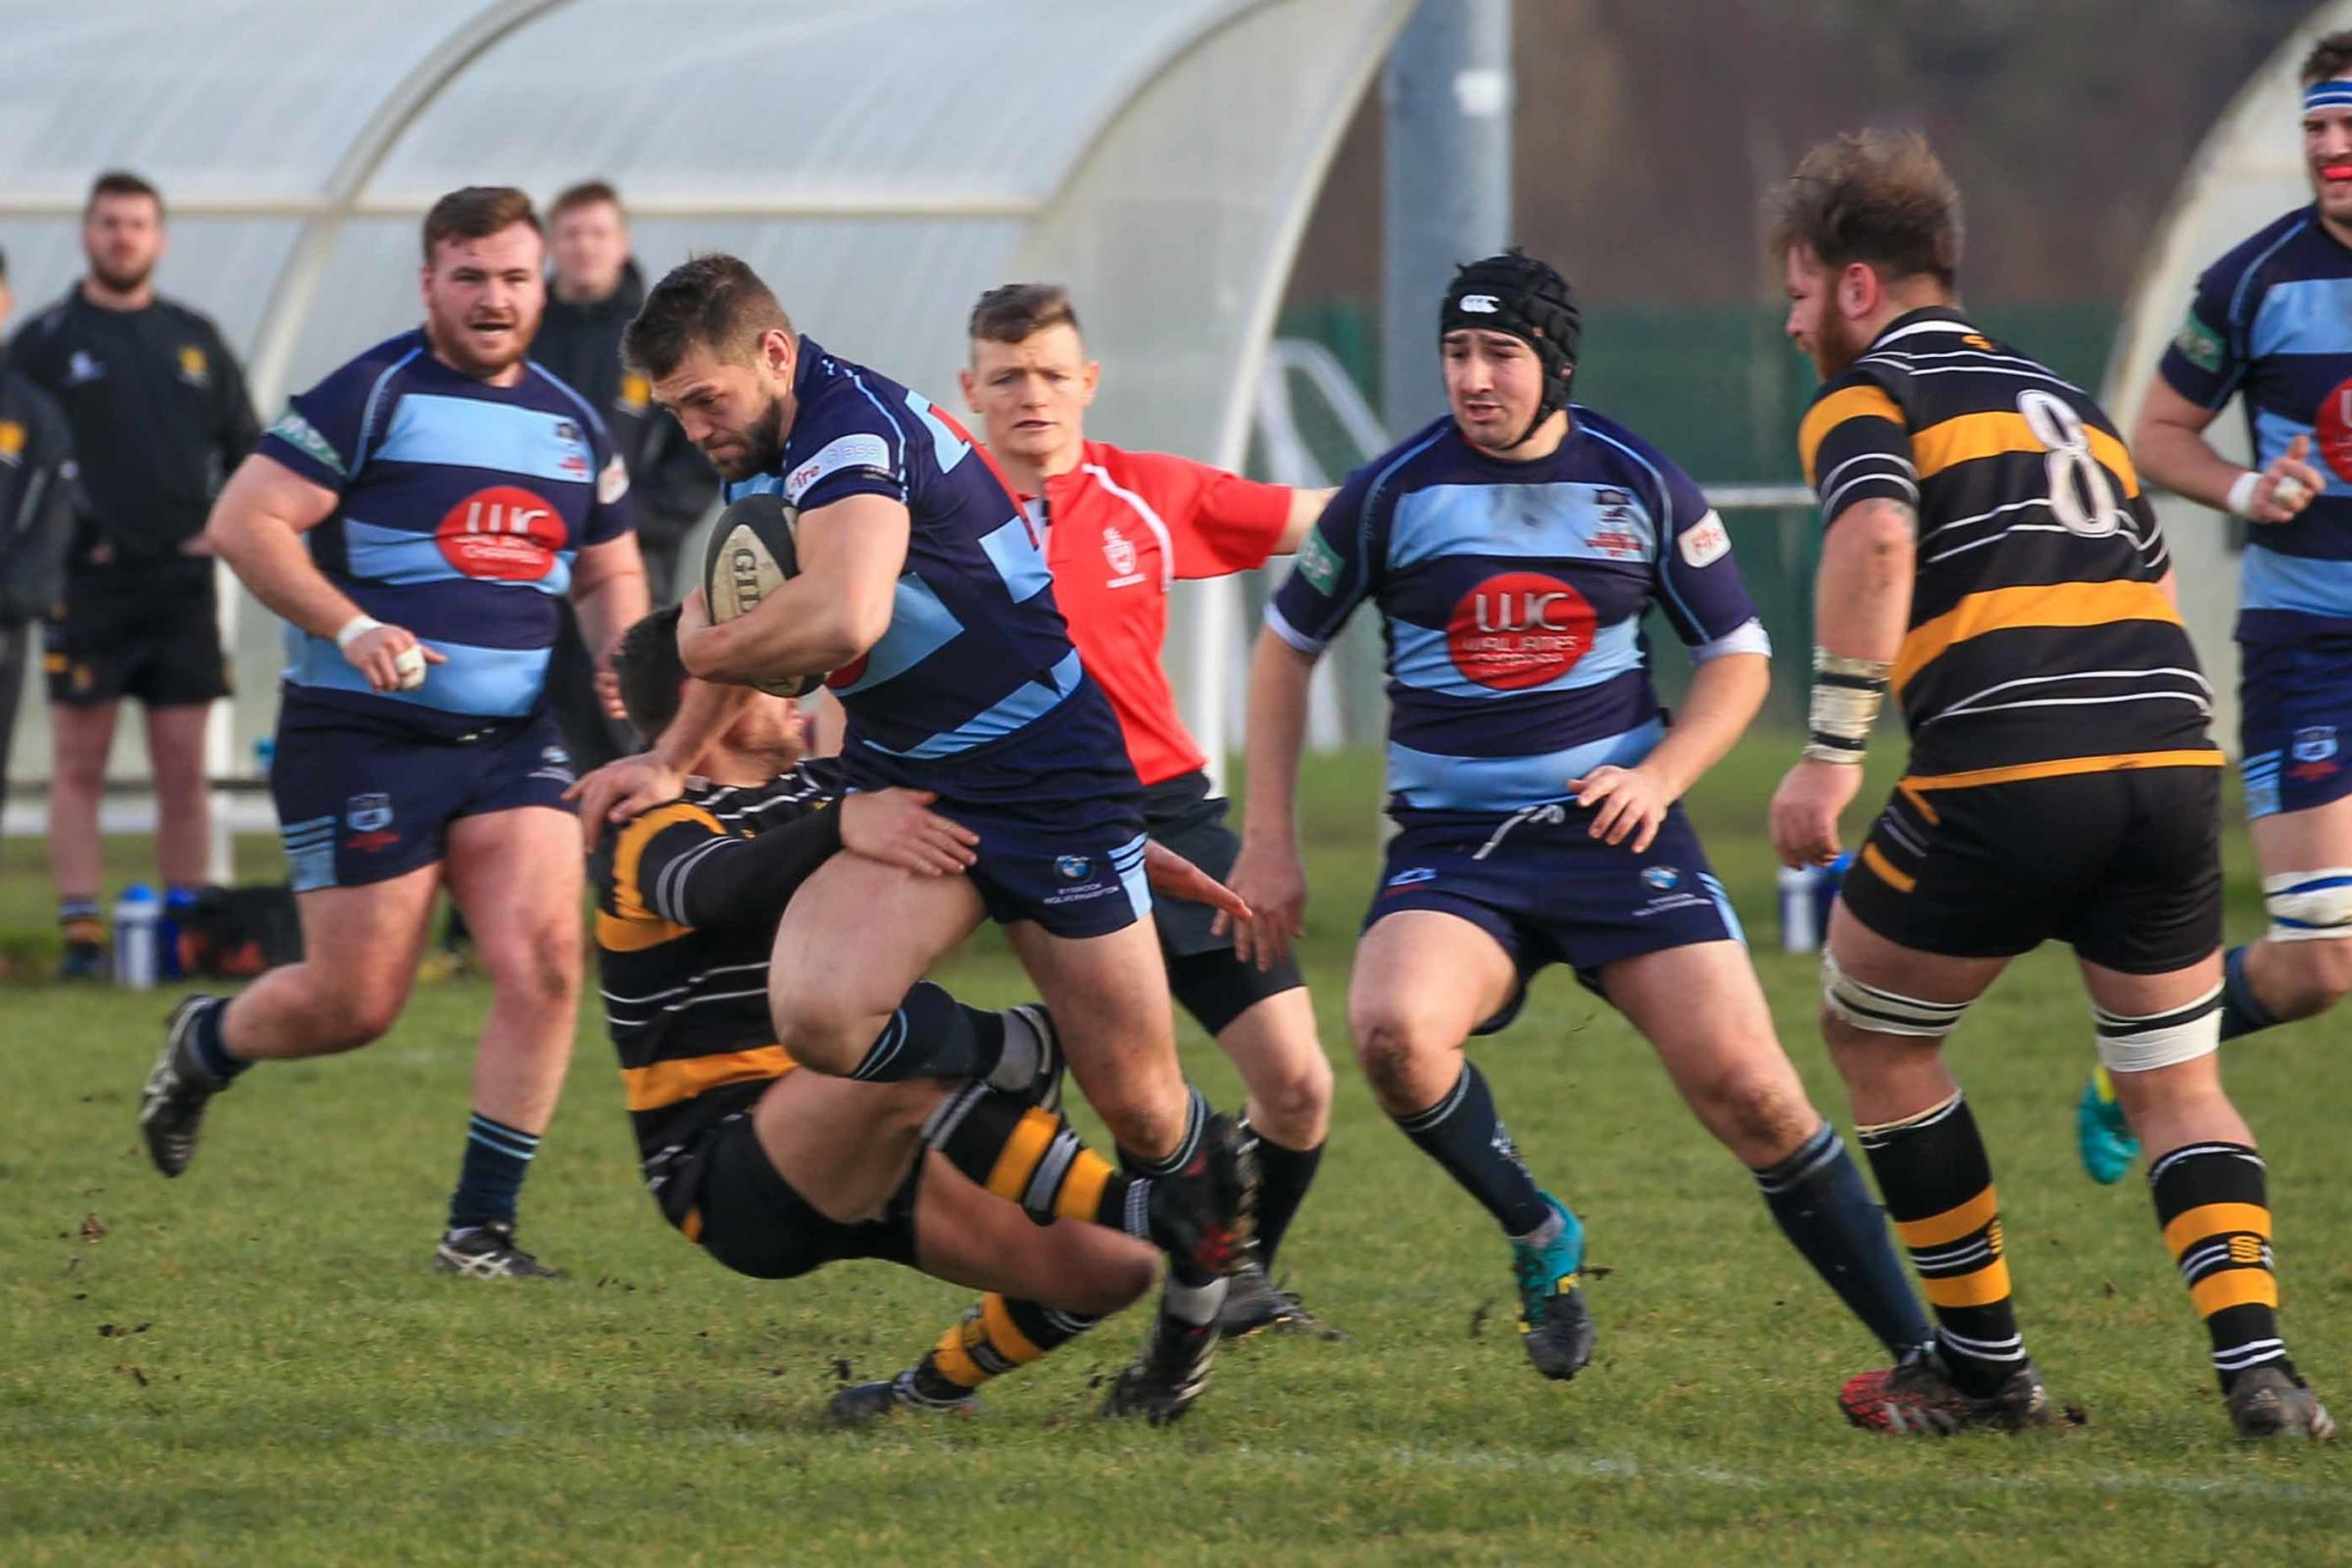 Stefan Shillingford bagged a hat-trick of tries against Moseley. Photo by Ian Jackson